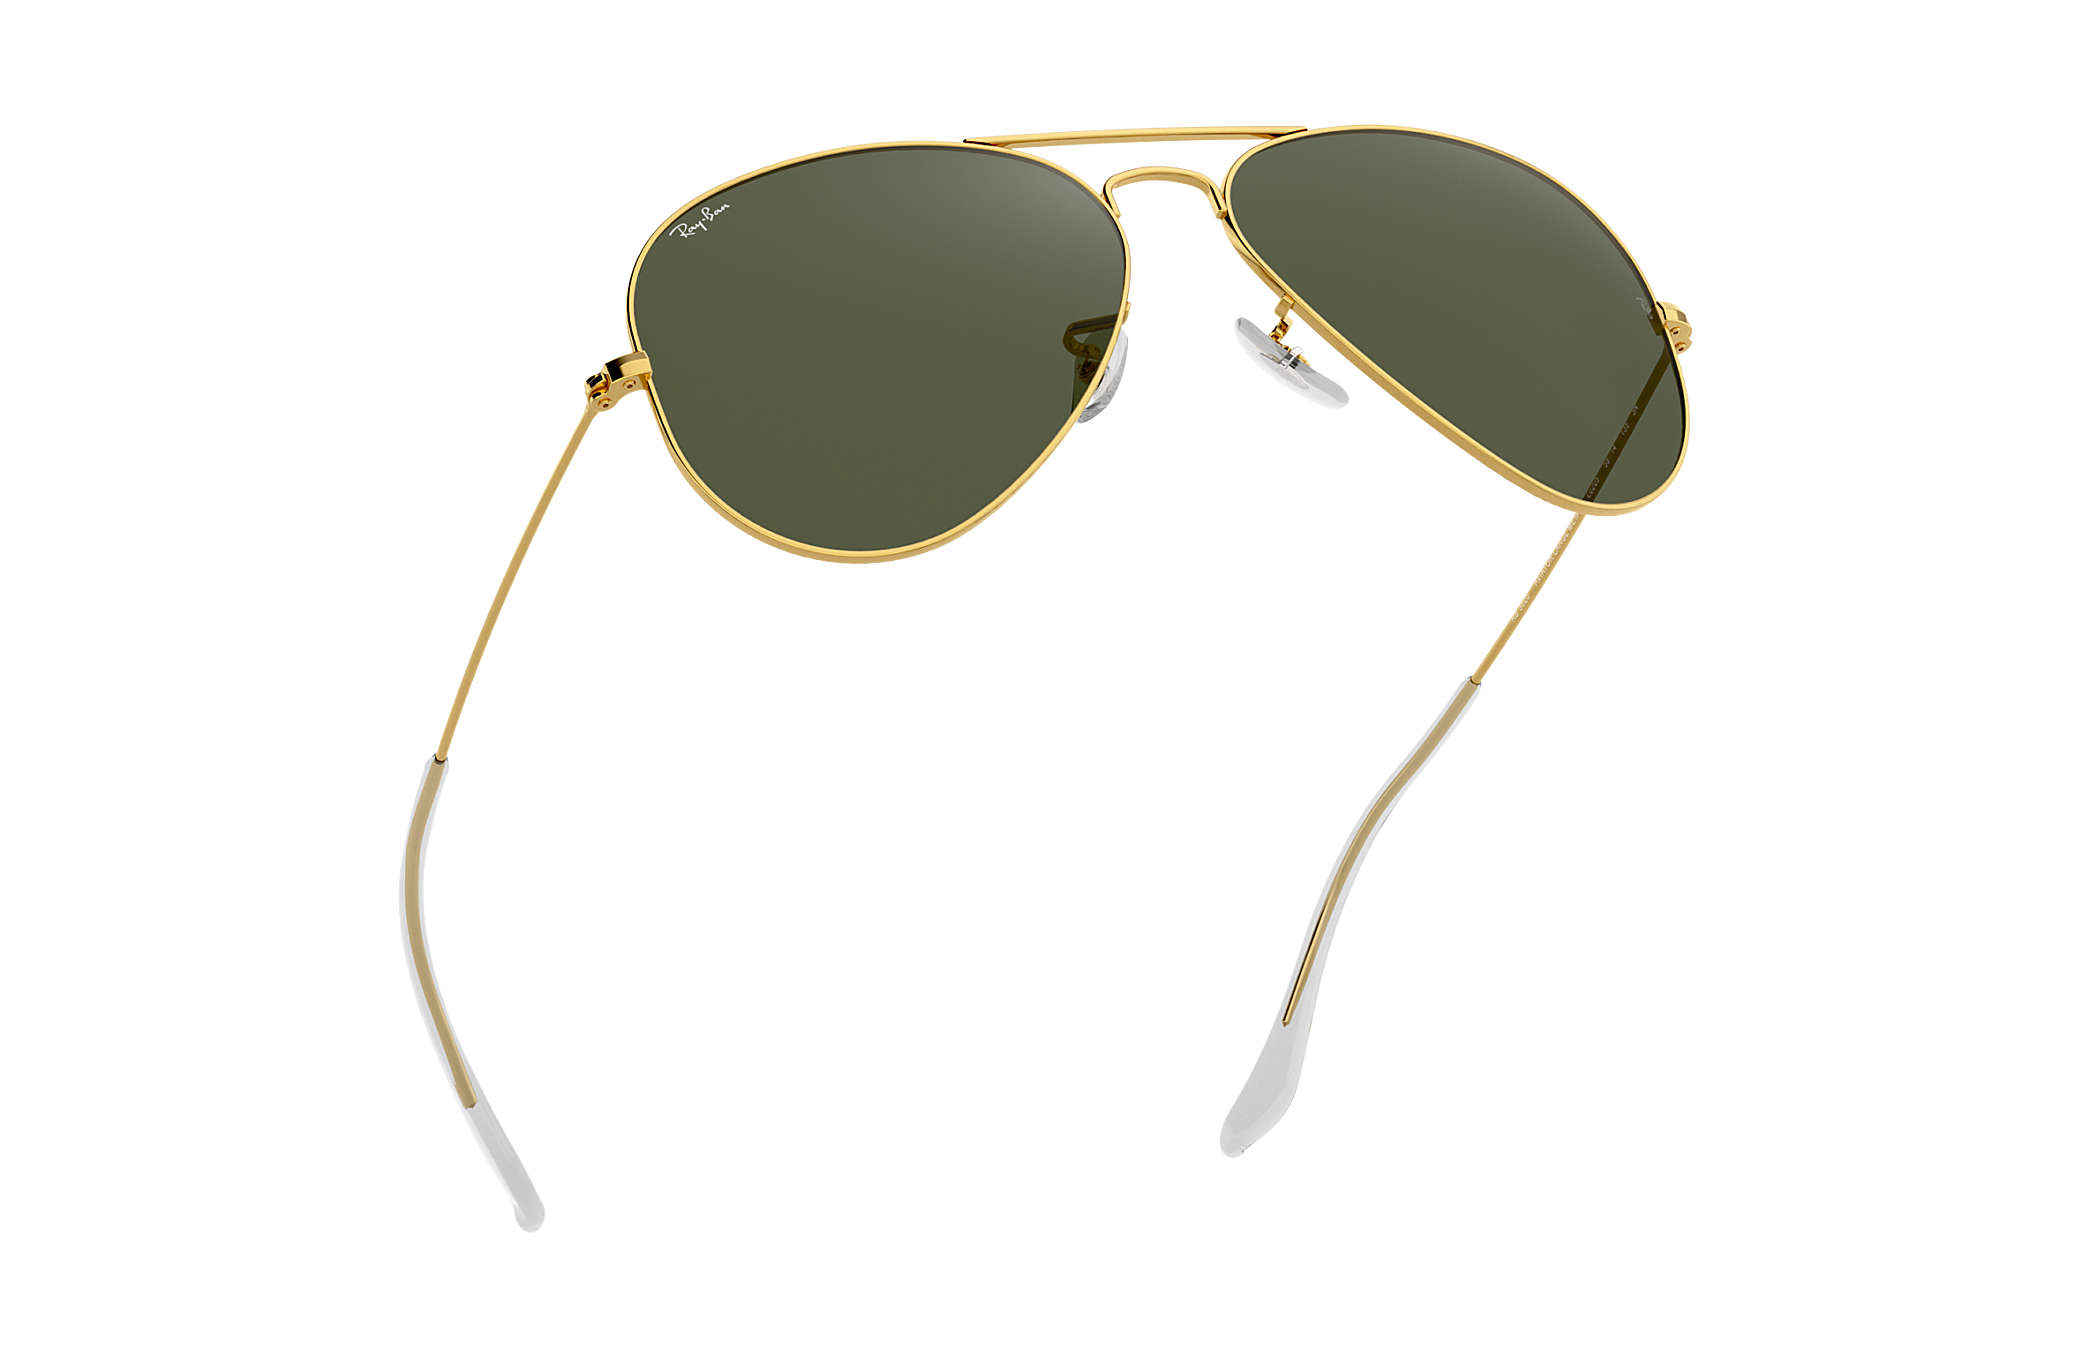 2340531d1a6be Ray-Ban Aviator Classic RB3025 Gold - Metal - Green Lenses ...